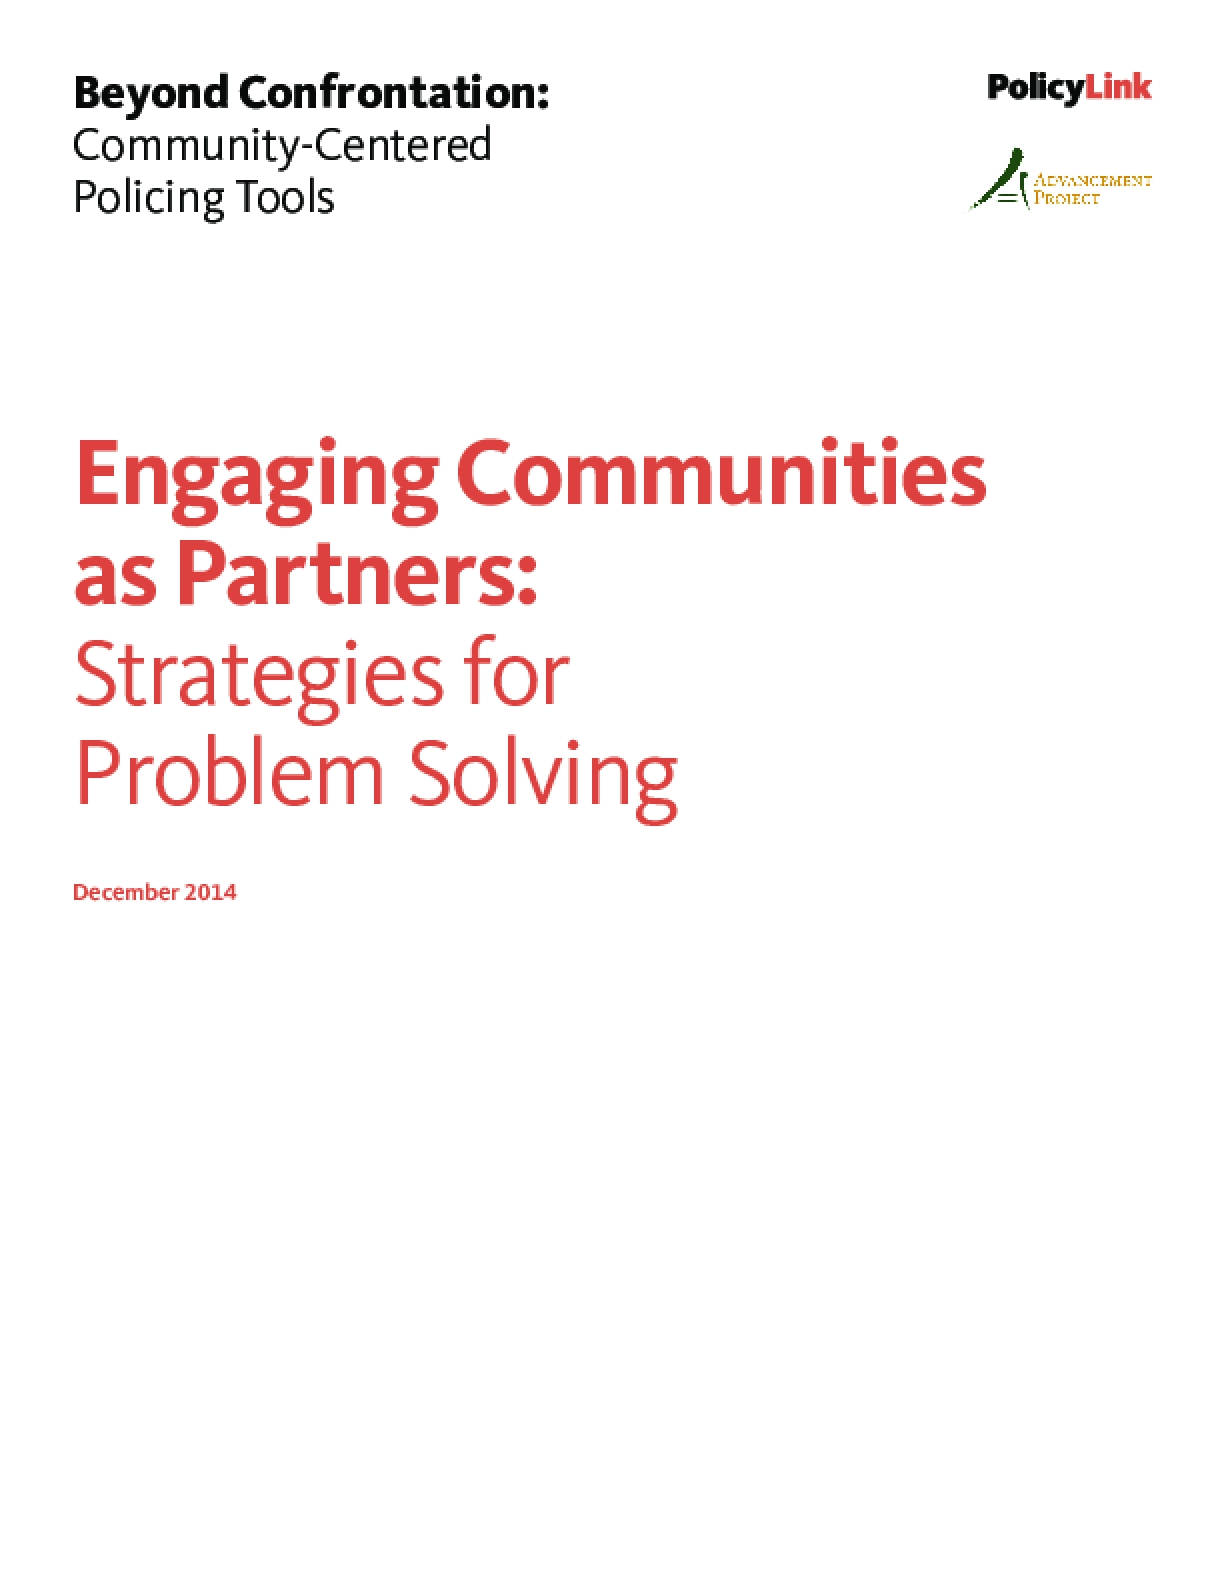 Engaging Communities as Partners: Strategies for Problem Solving